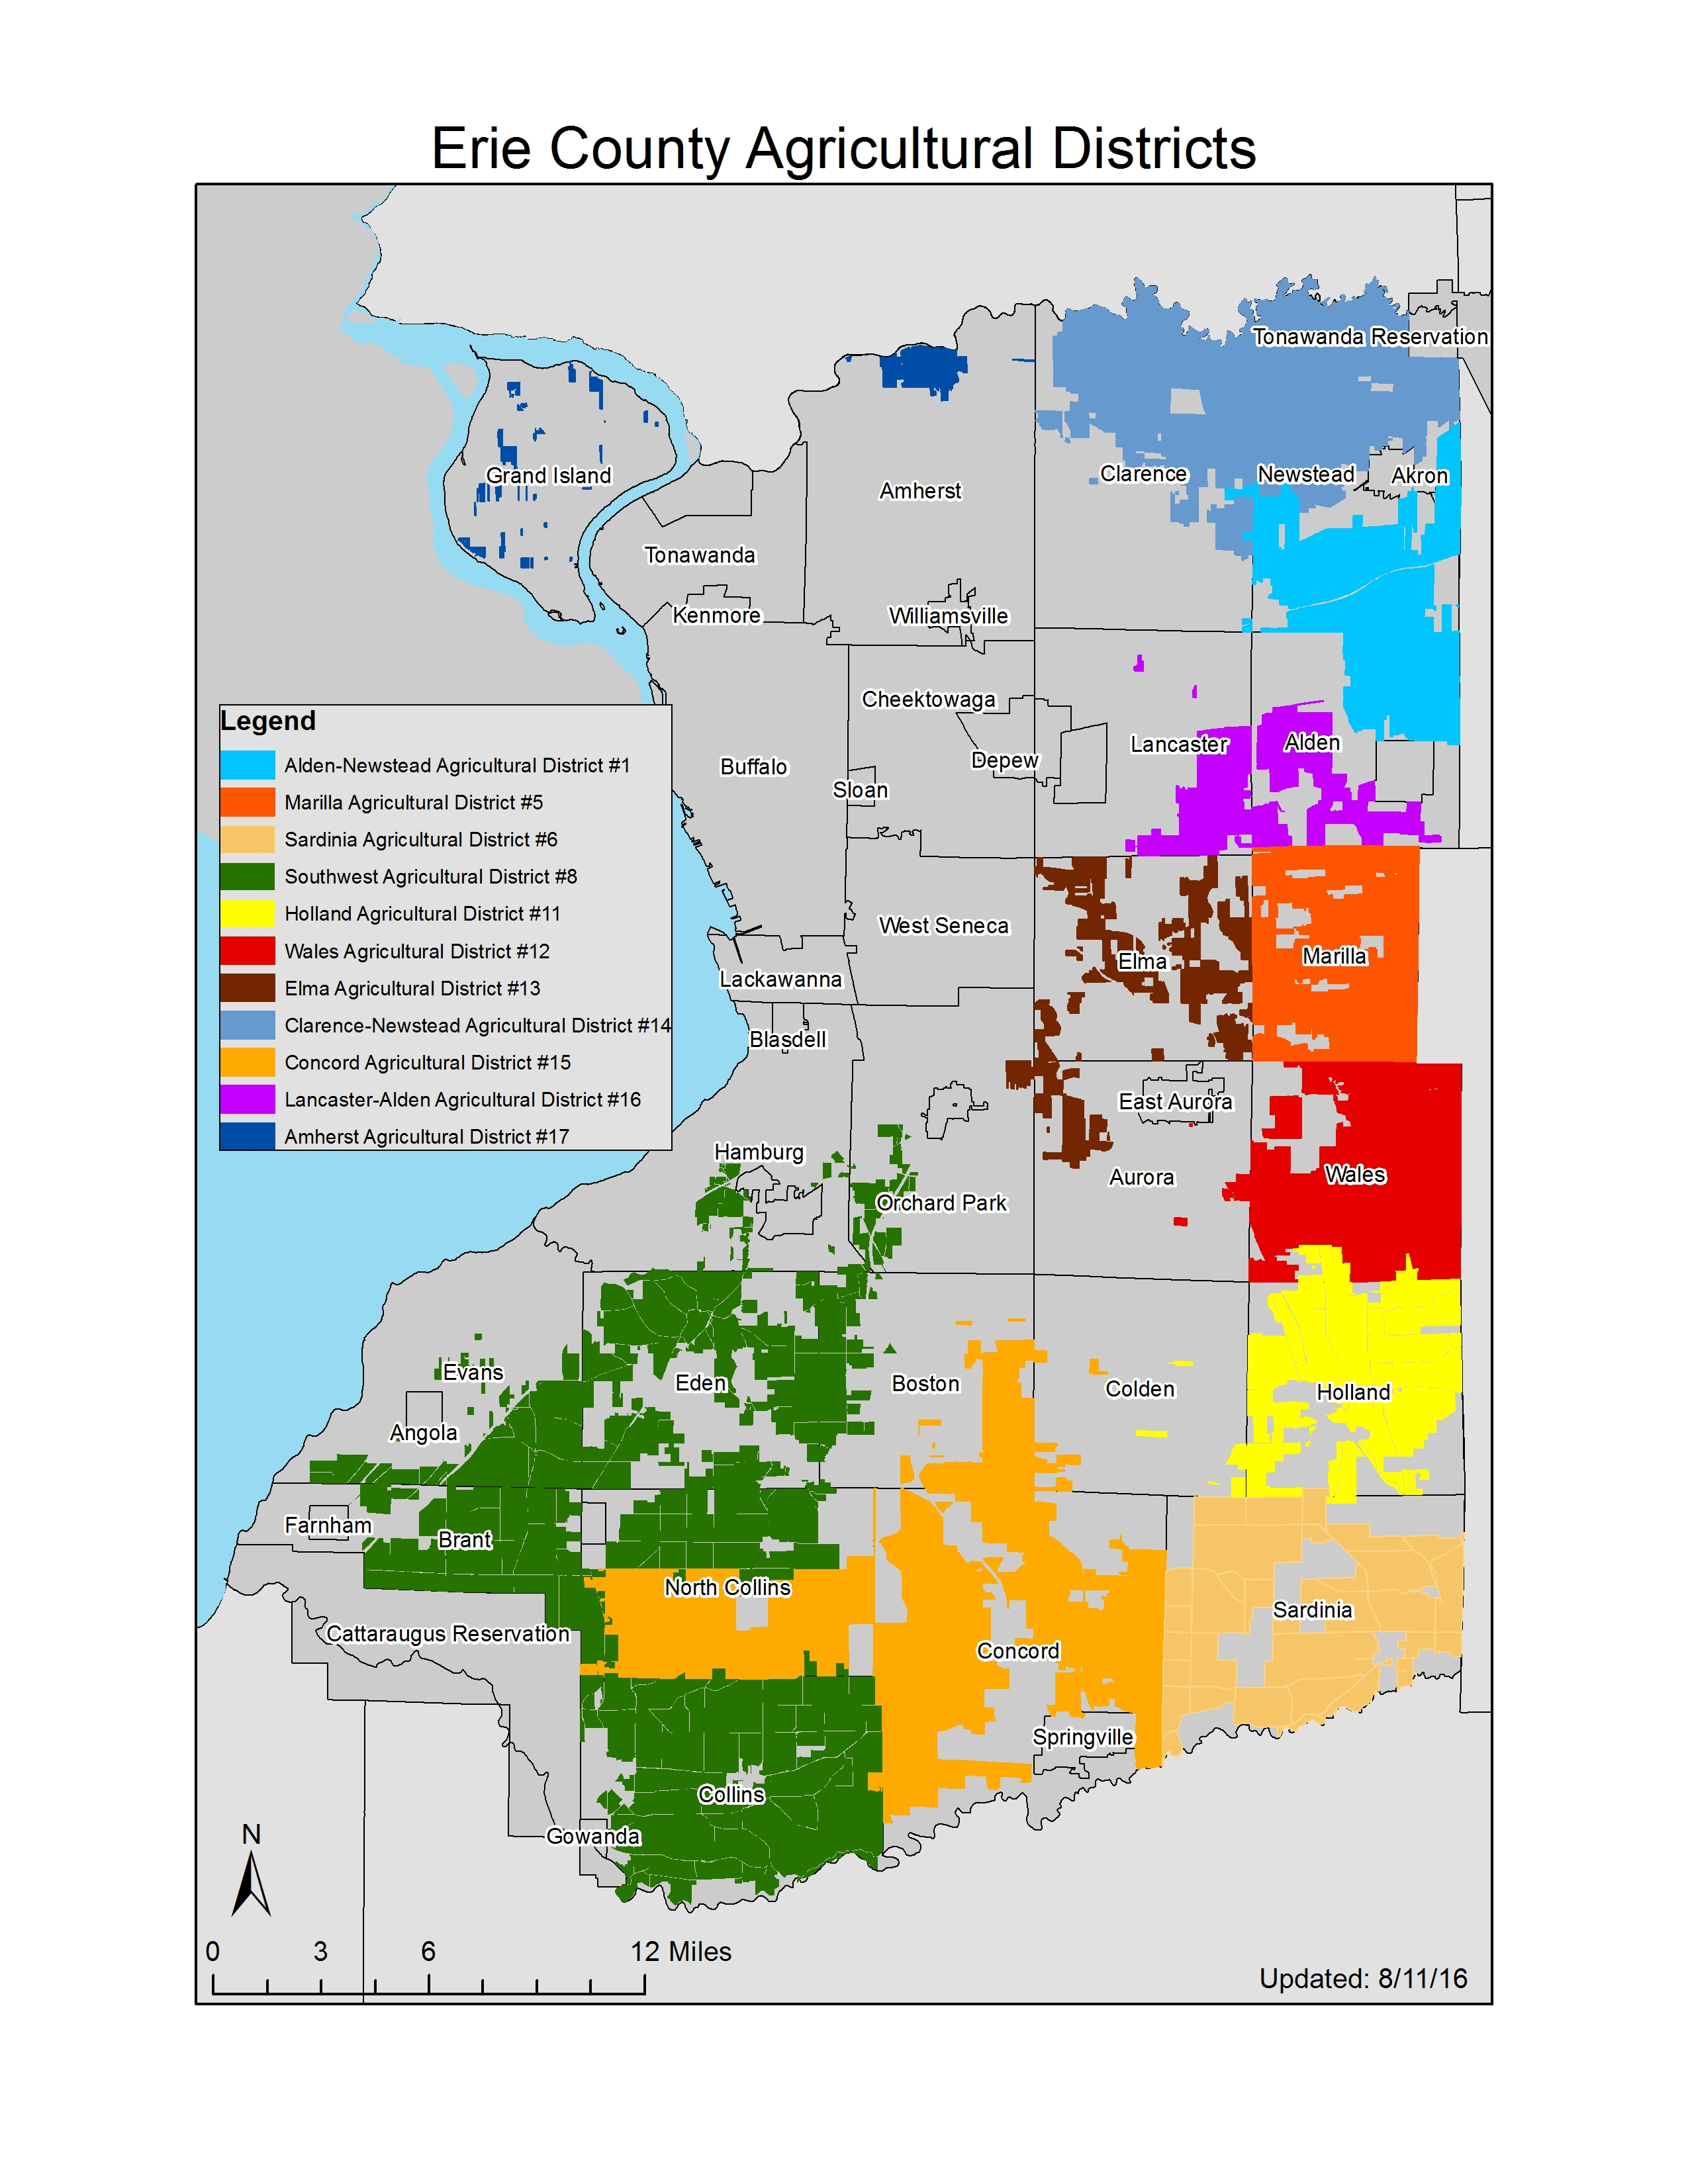 Map of All Erie County Agricultural Districts 2015